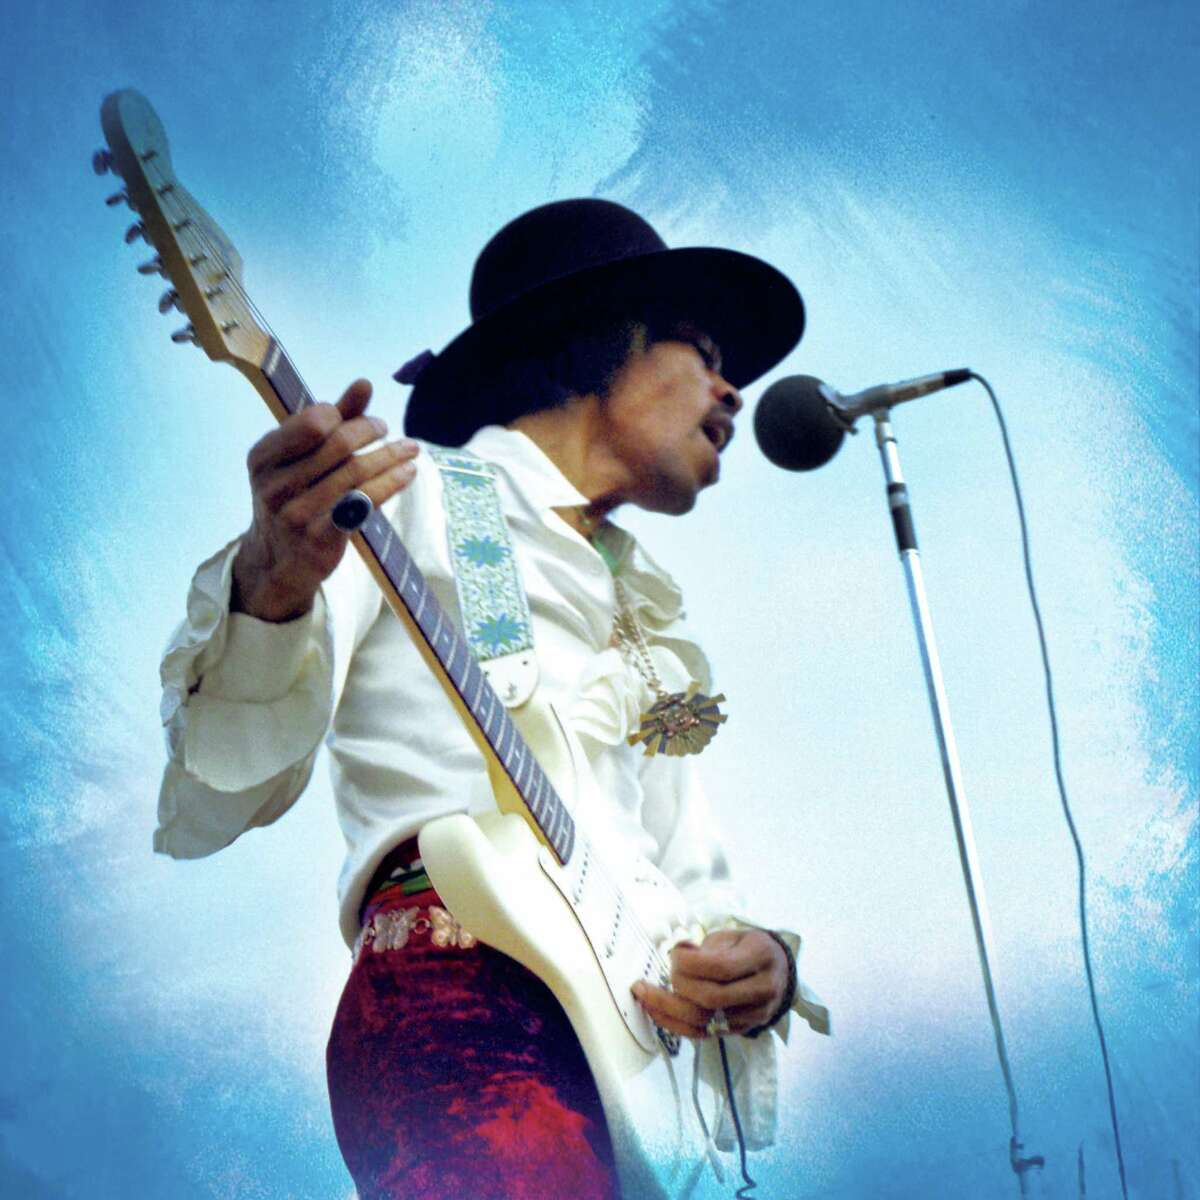 Jimi Hendrix Experience performs at the 1968 Miami Pop Festival. Many novices buy guitars to help realize their dreams as rock stars, but lots of guitars end up in storage after a few months, never picked up again.